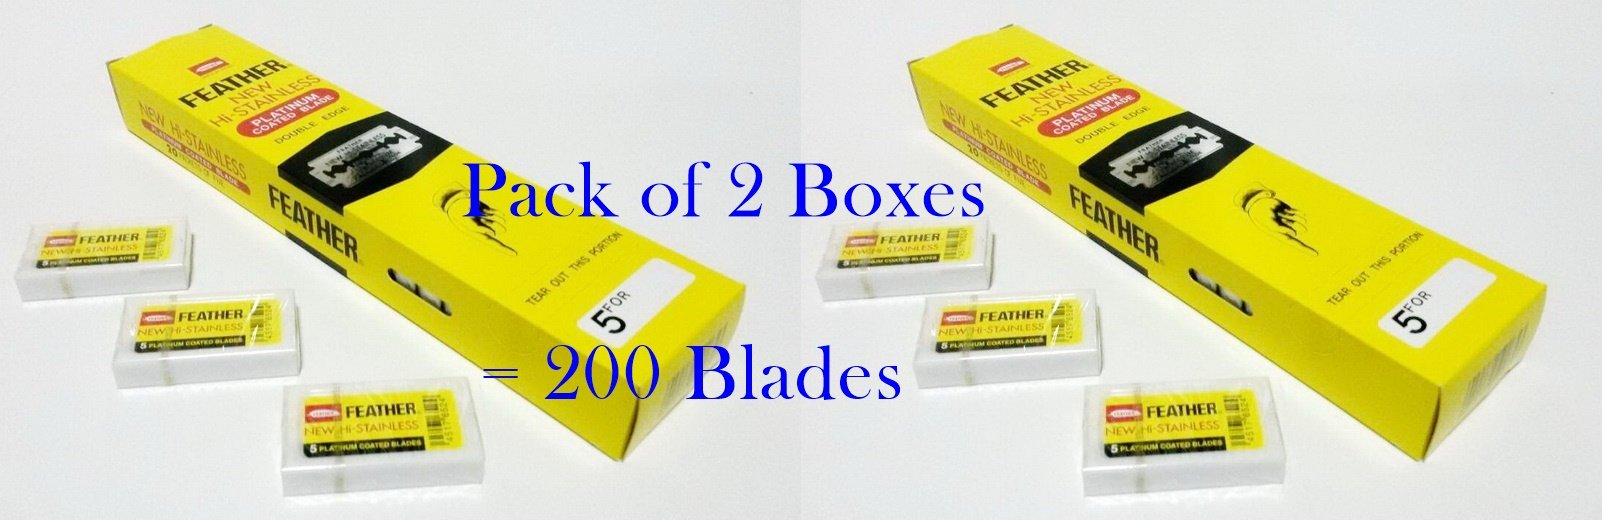 Pack of 2 Boxes (200 Blades) FEATHER Hi Stainless Platimum Coated Doubled Edge Razor Blades Yellow Box by mewinshop